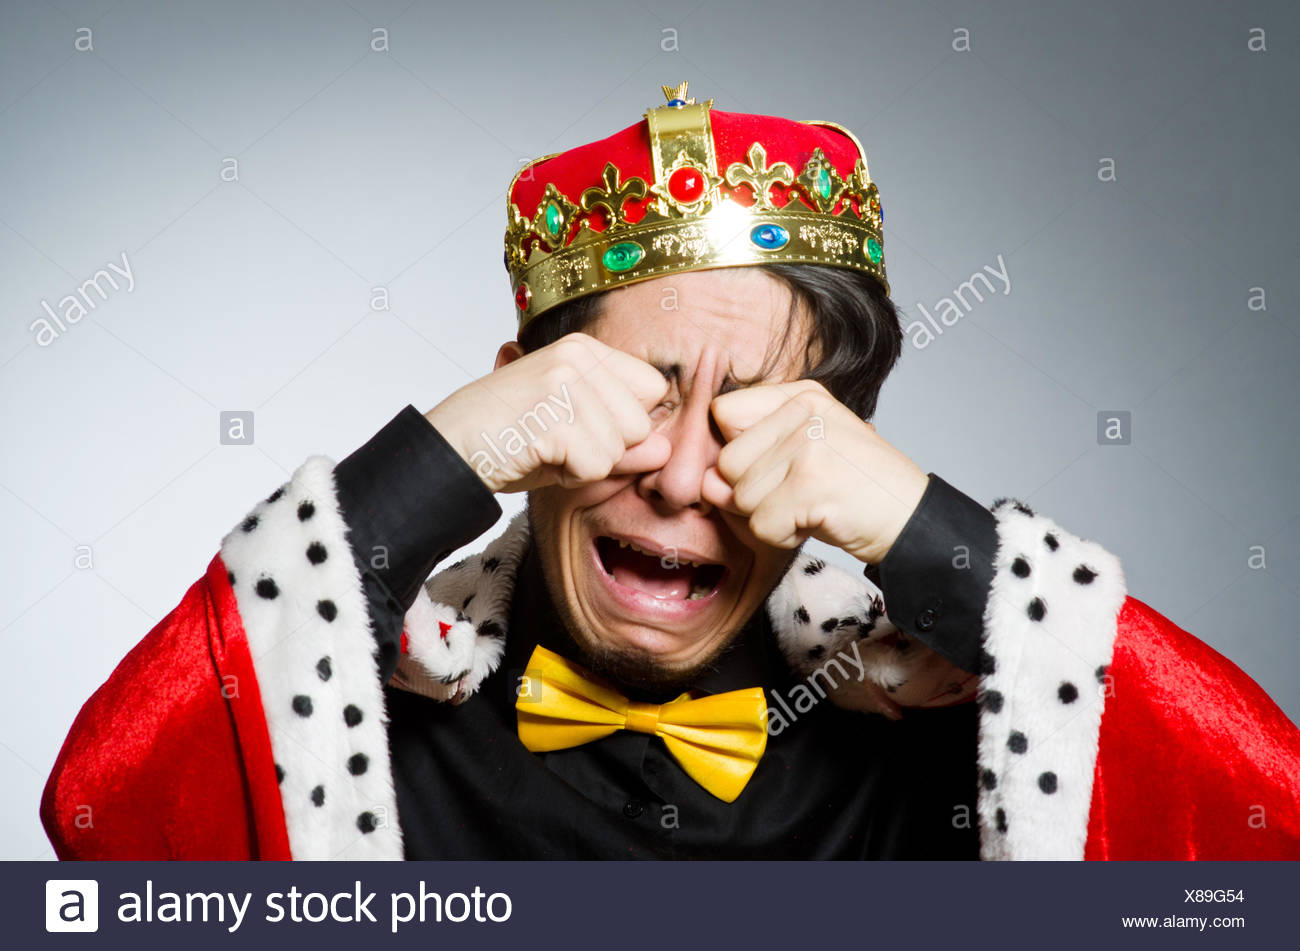 Concept of king businessman with crown - Stock Image